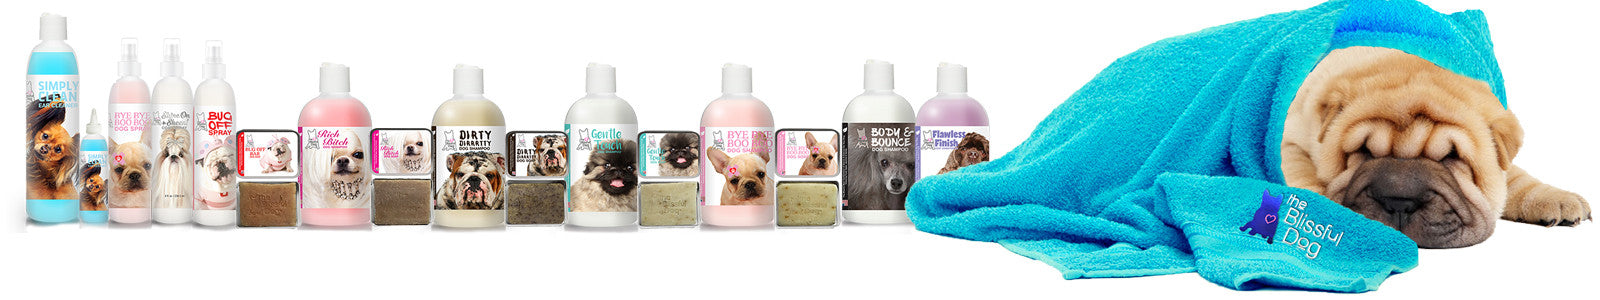 dog soaps and shampoos